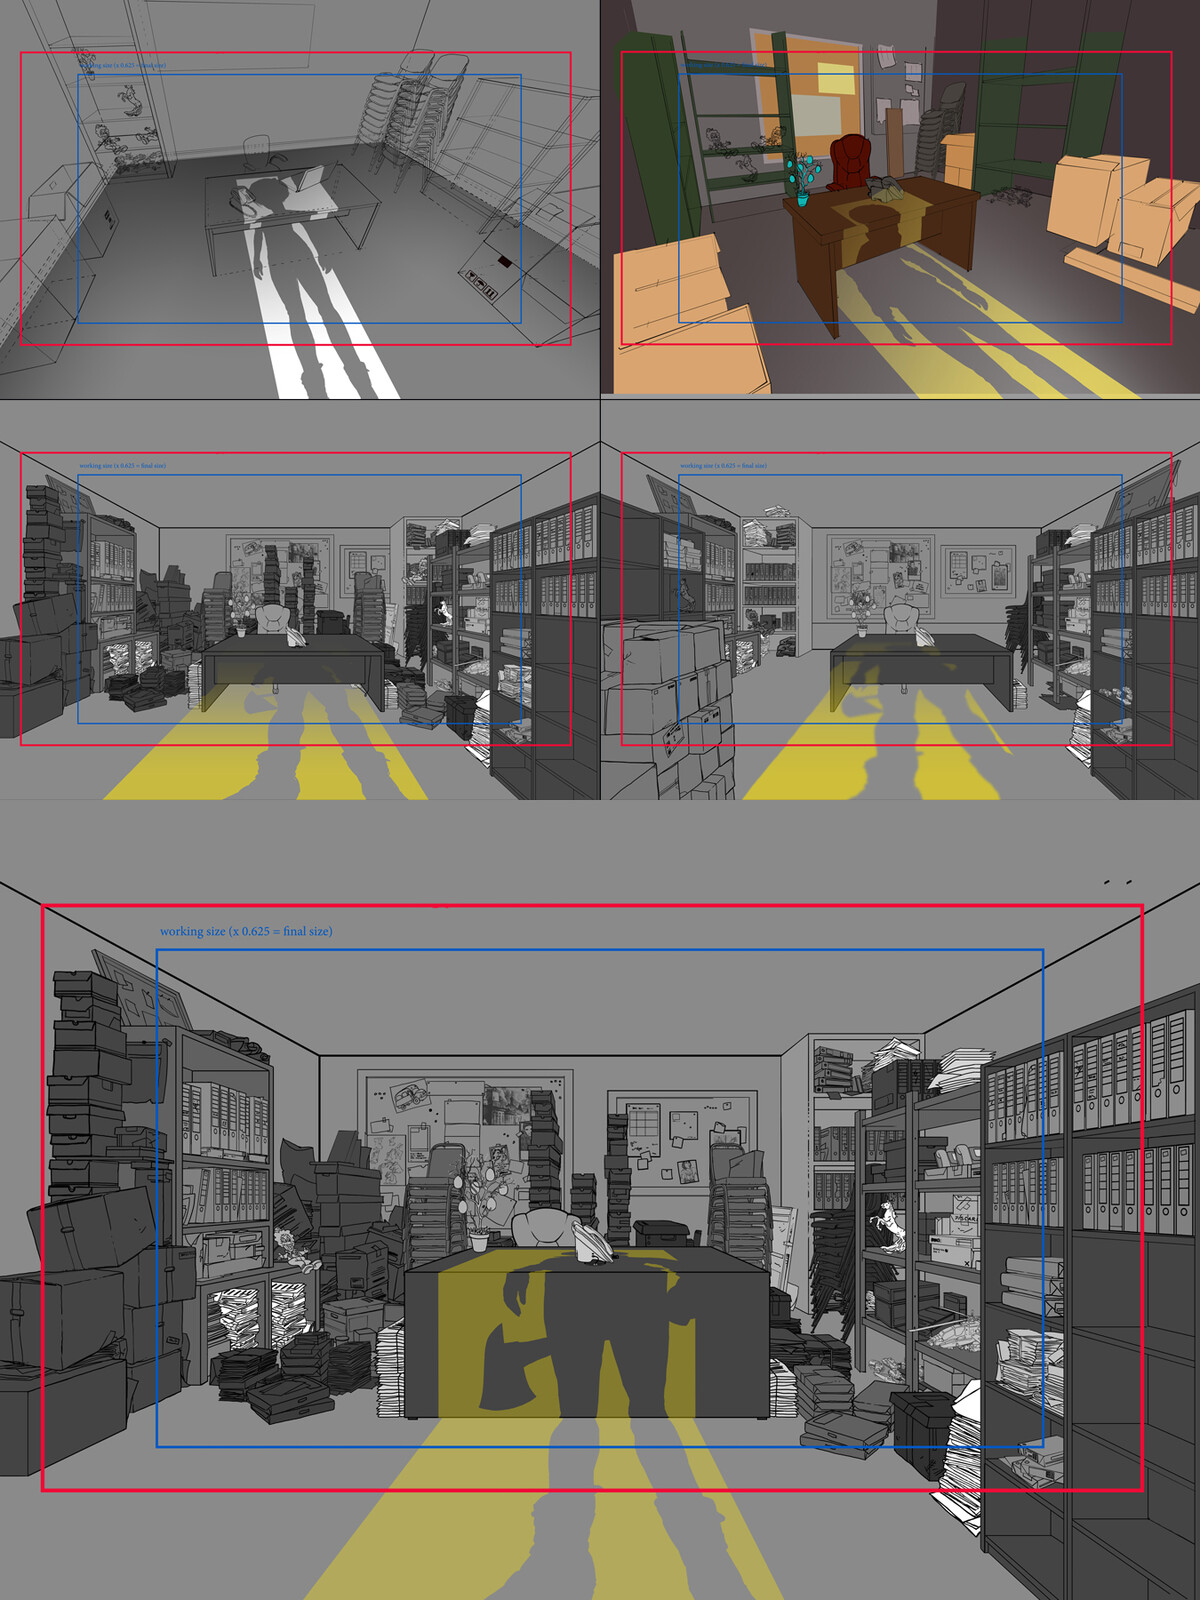 Top 4 thumbnails: previous versions